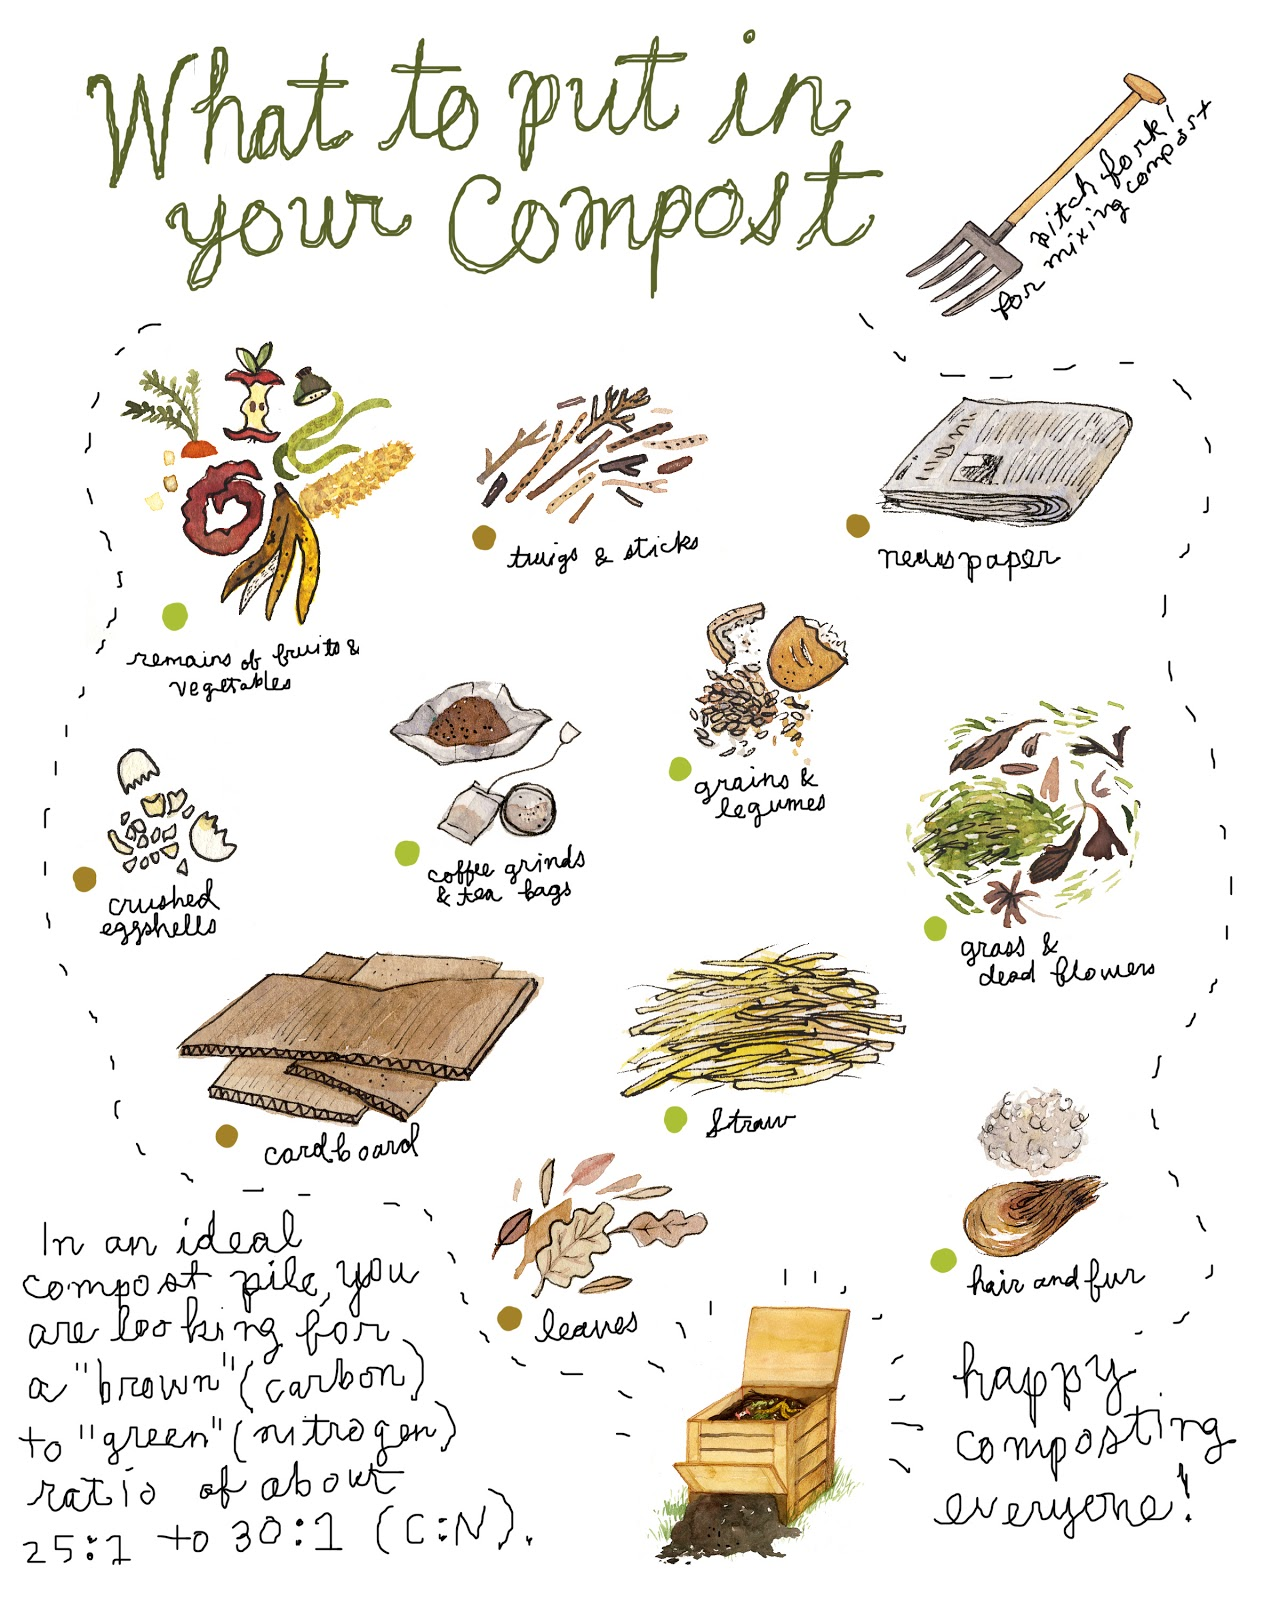 Robin Clugston Composting Greens And Browns